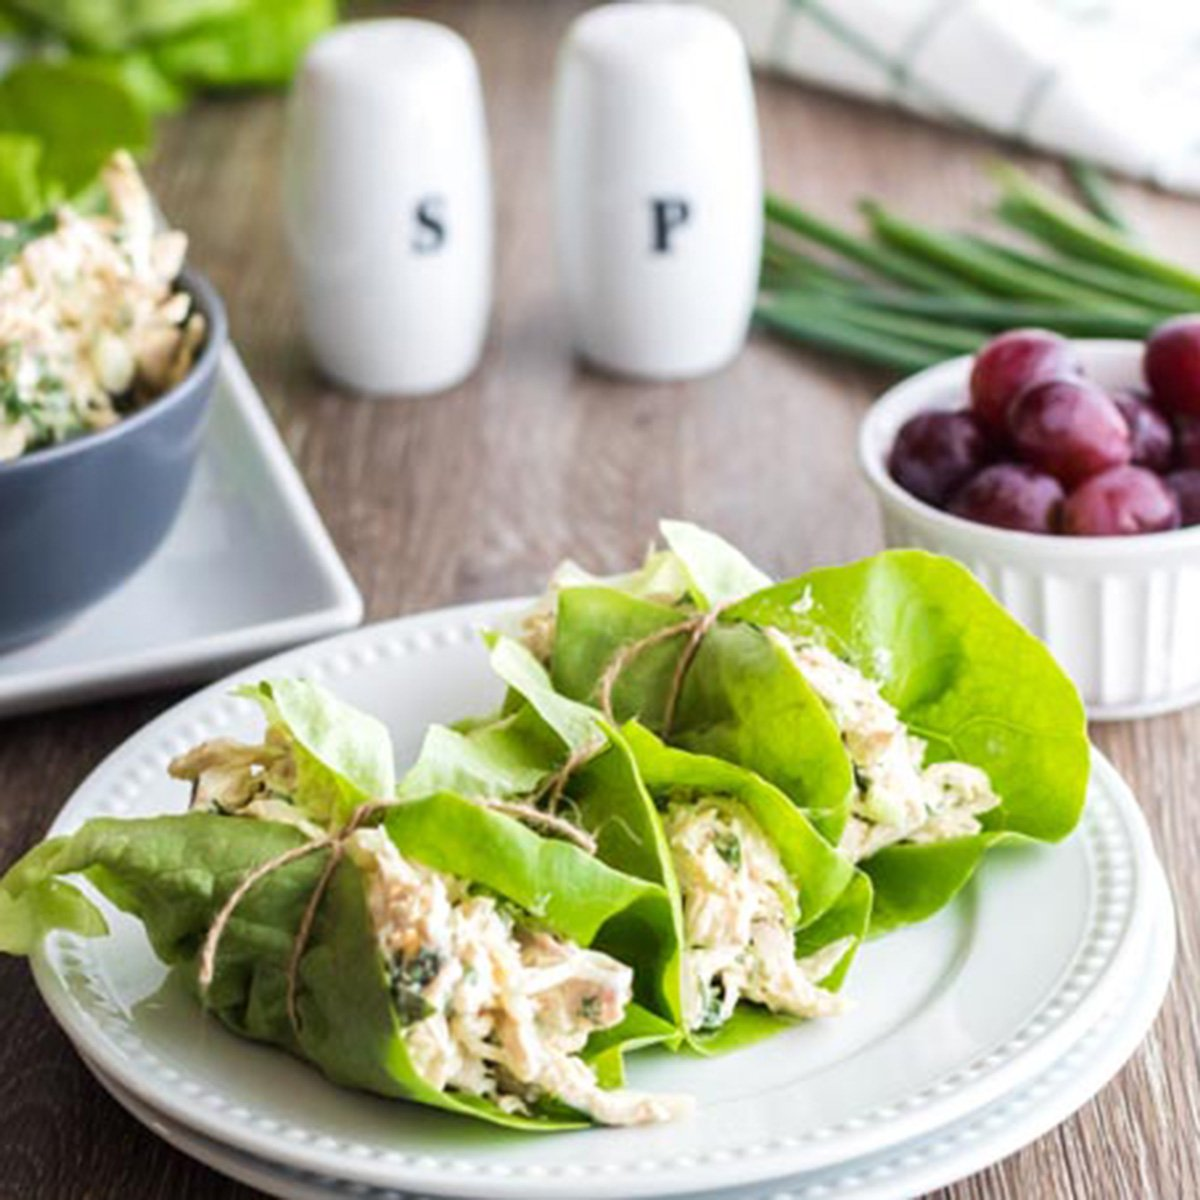 A plate of chicken salad wraps and a dish of grapes.